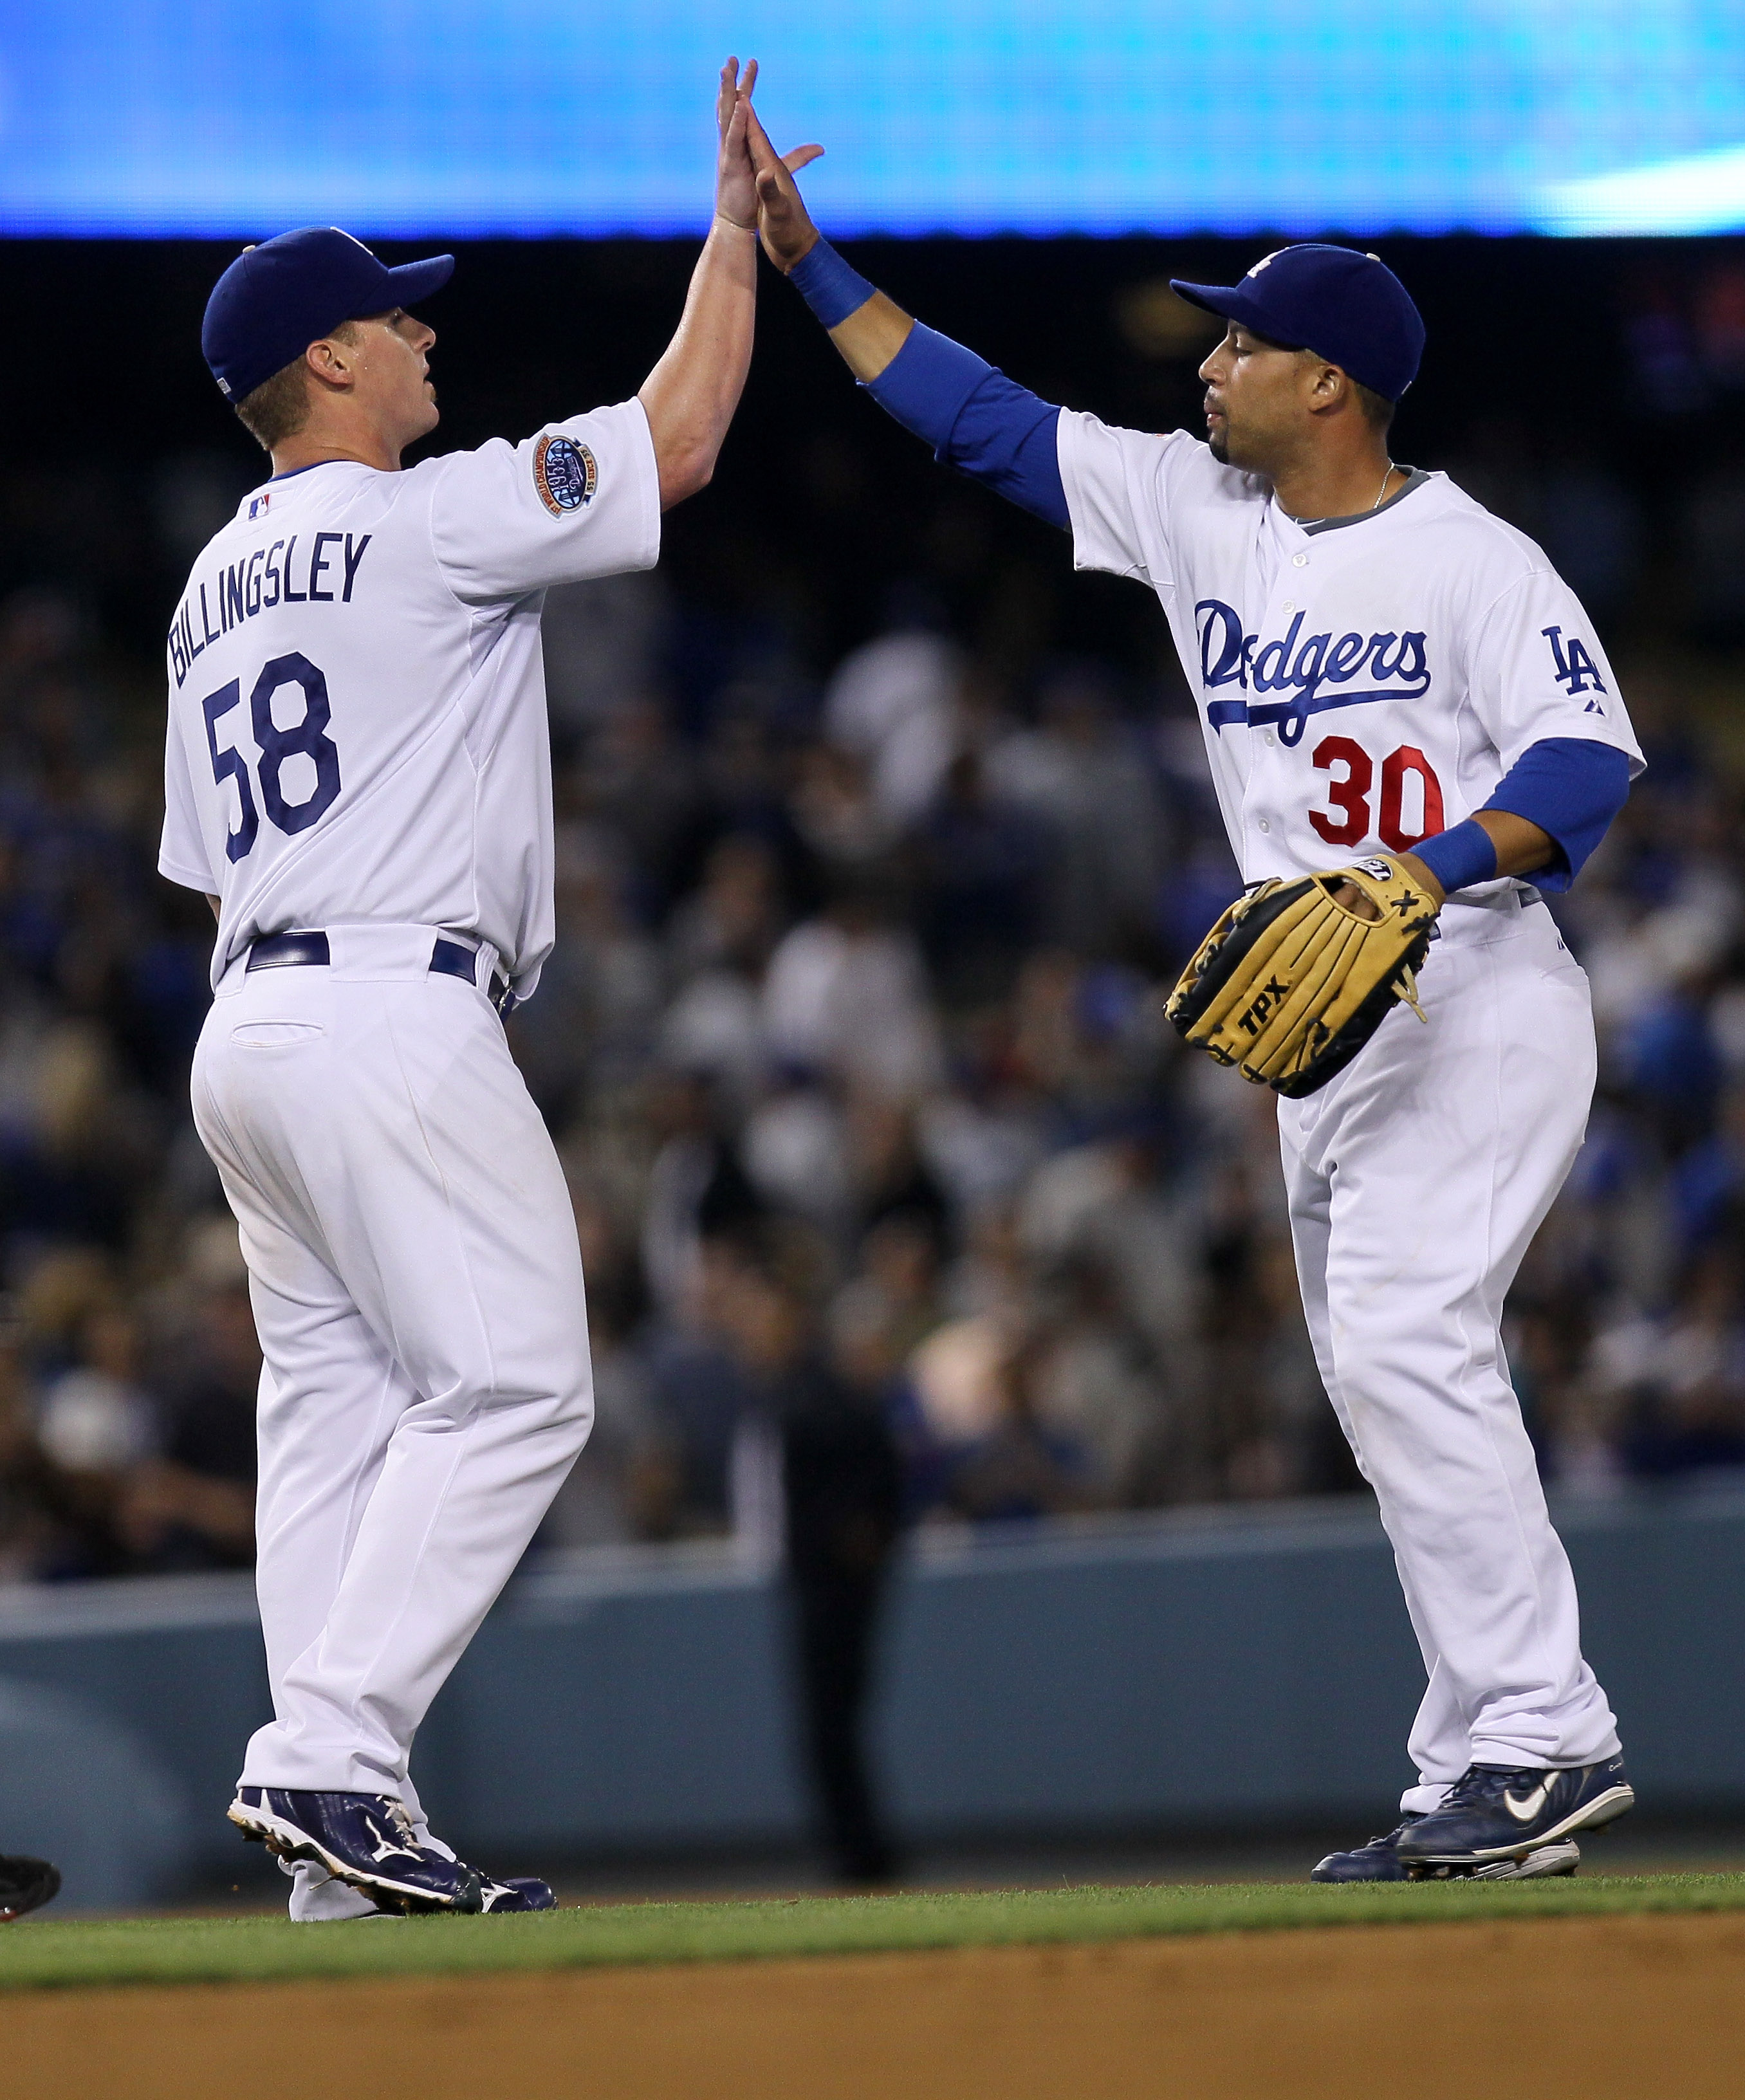 LOS ANGELES, CA - JULY 21:  Pitcher Chad Billingsley #58 of the Los Angeles Dodgers is congratulated by outfielder Xavier Paul #30 after his complete game shutout against the San Francisco Giants on July 21, 2010 at Dodger Stadium in Los Angeles, Californ